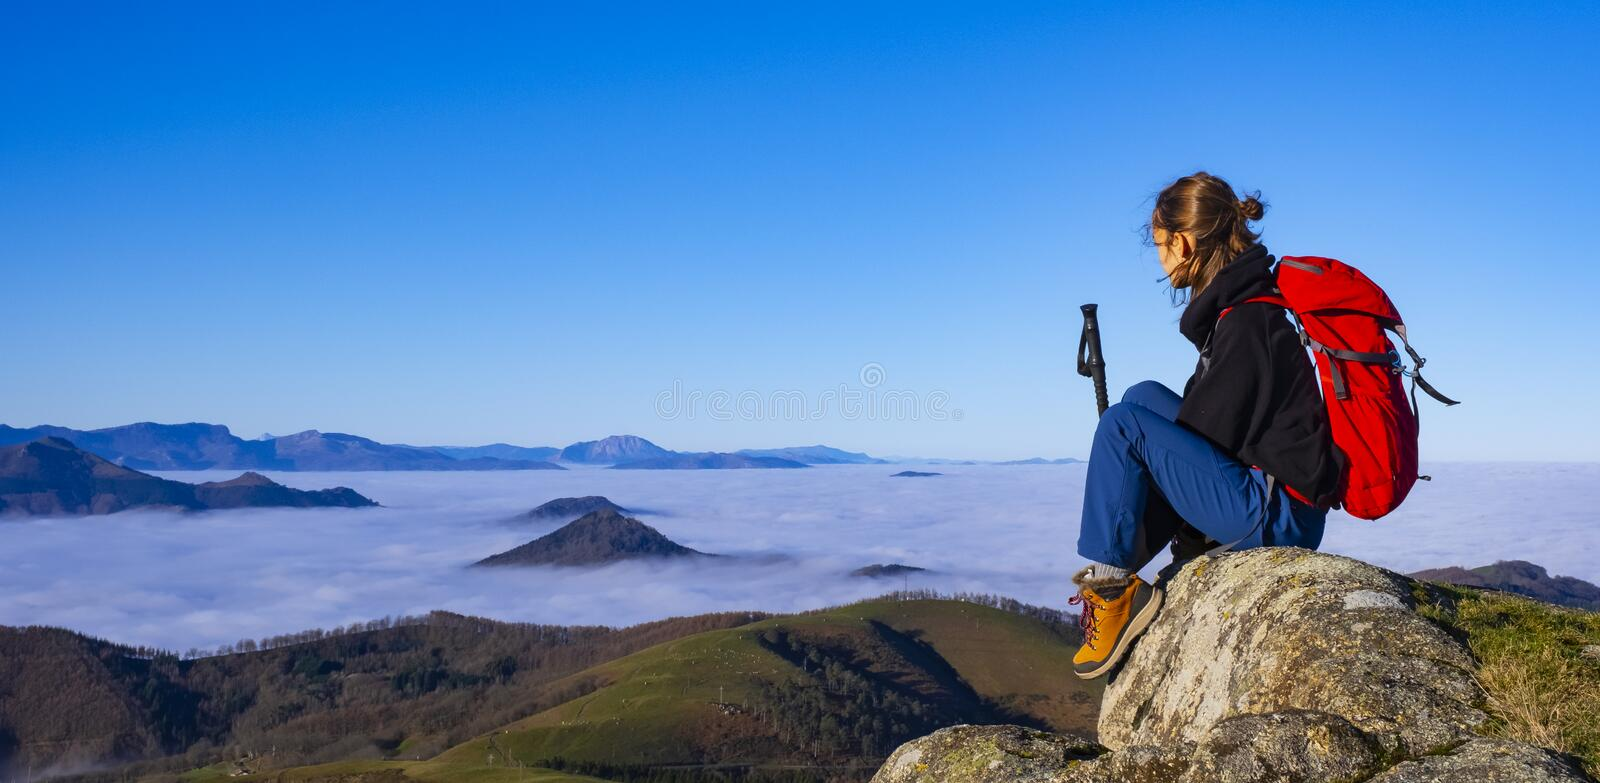 Successful woman backpacker enjoy the view on mountain peak stock photography